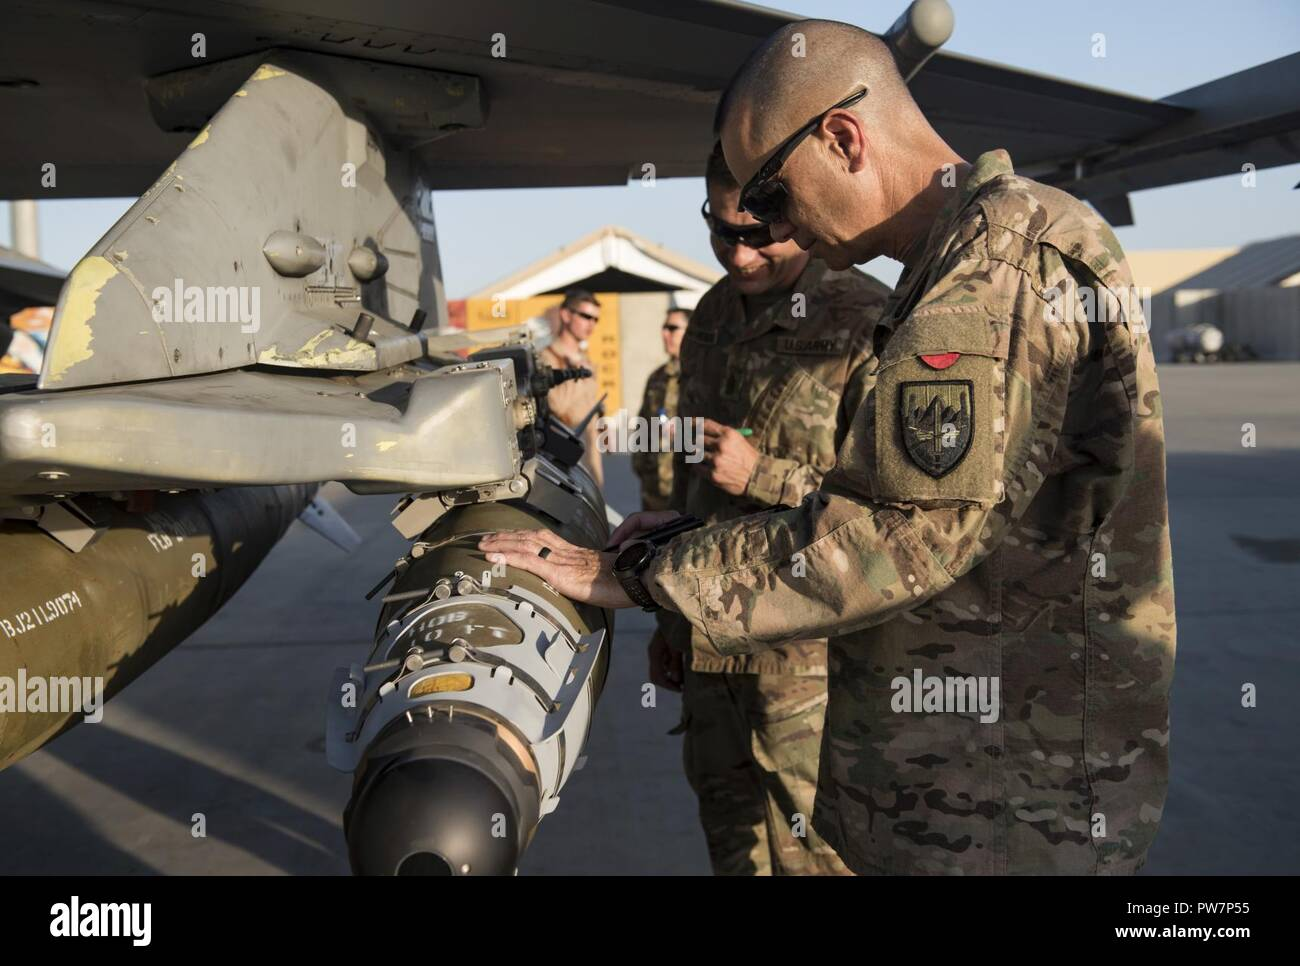 U.S. Army Maj. Gen. Leopoldo Quintas, the deputy commanding general of U.S. Forces Afghanistan, signs a bomb during a visit of the 455th Air Expeditionary Wing at Bagram Airfield, Afghanistan, Sept. 26, 2017. During his immersion of the 455th AEW, Quintas saw firsthand how Airmen deliver airpower and enable a successful train, advise, and assist campaign in Afghanistan. Stock Photo